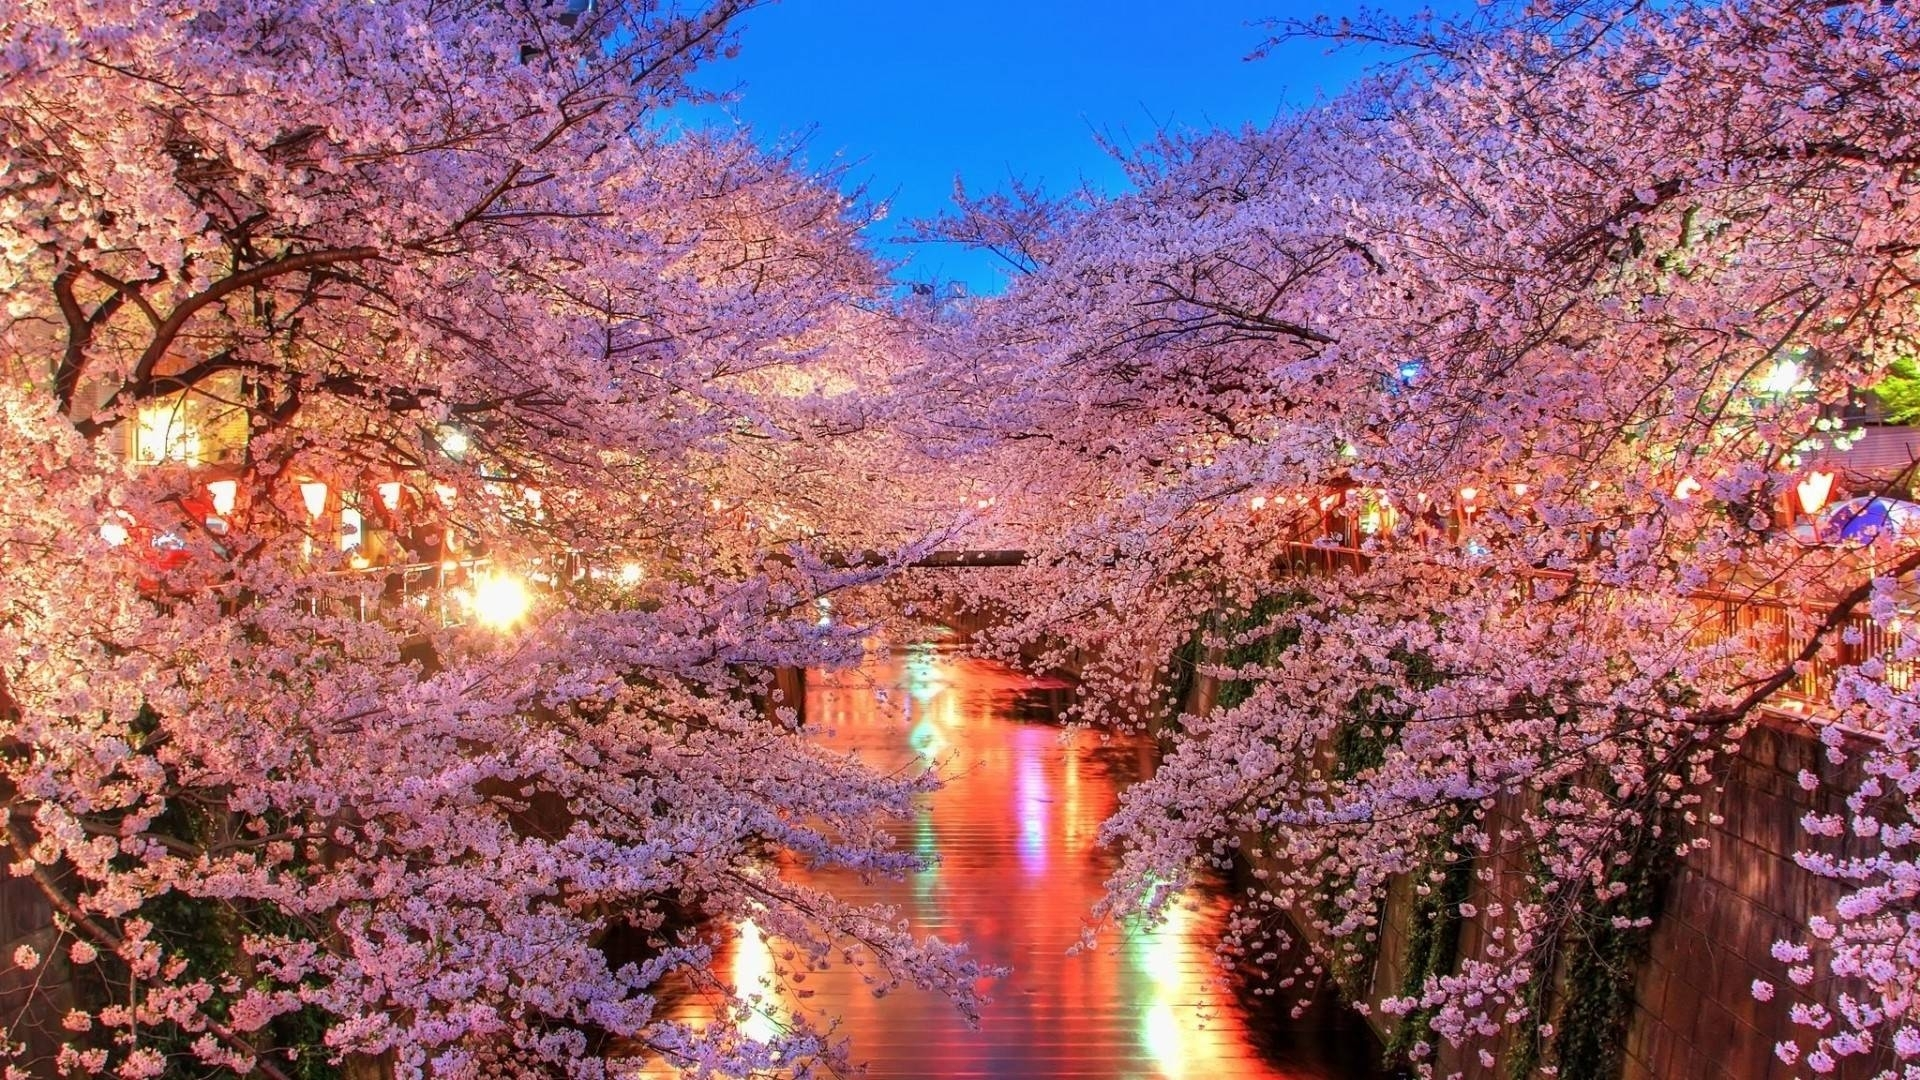 10 Latest Cherry Blossom Desktop Wallpaper FULL HD 1080p For PC Desktop